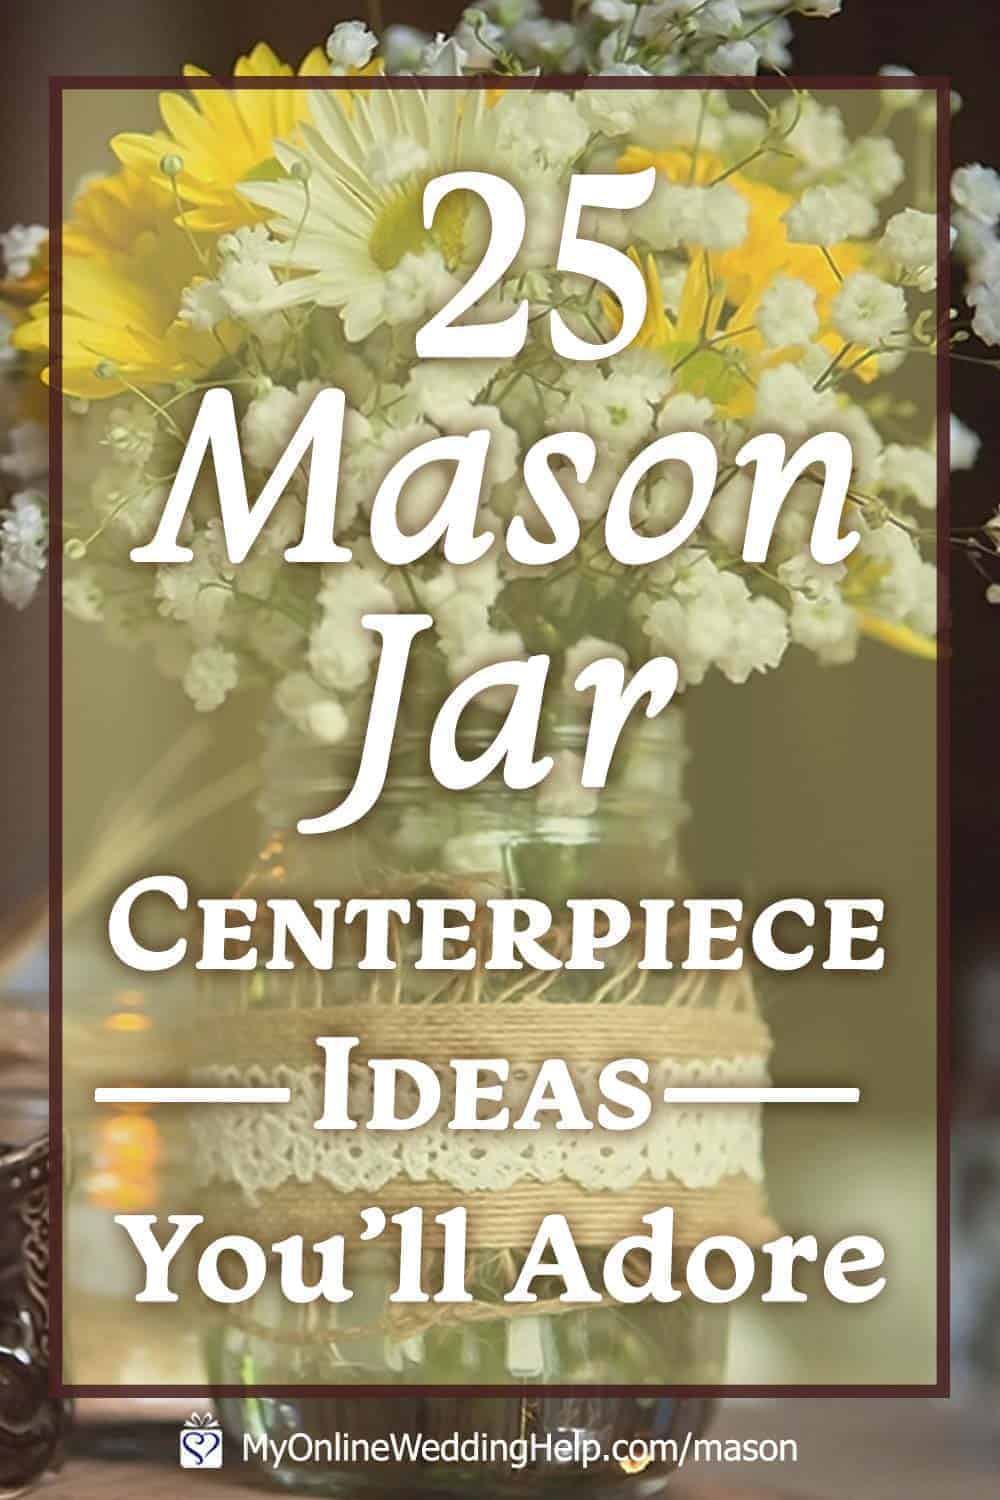 25 Mason Jar Centerpiece Ideas for Weddings - My Online Wedding Help.  Wedding Planning Tips & Tools